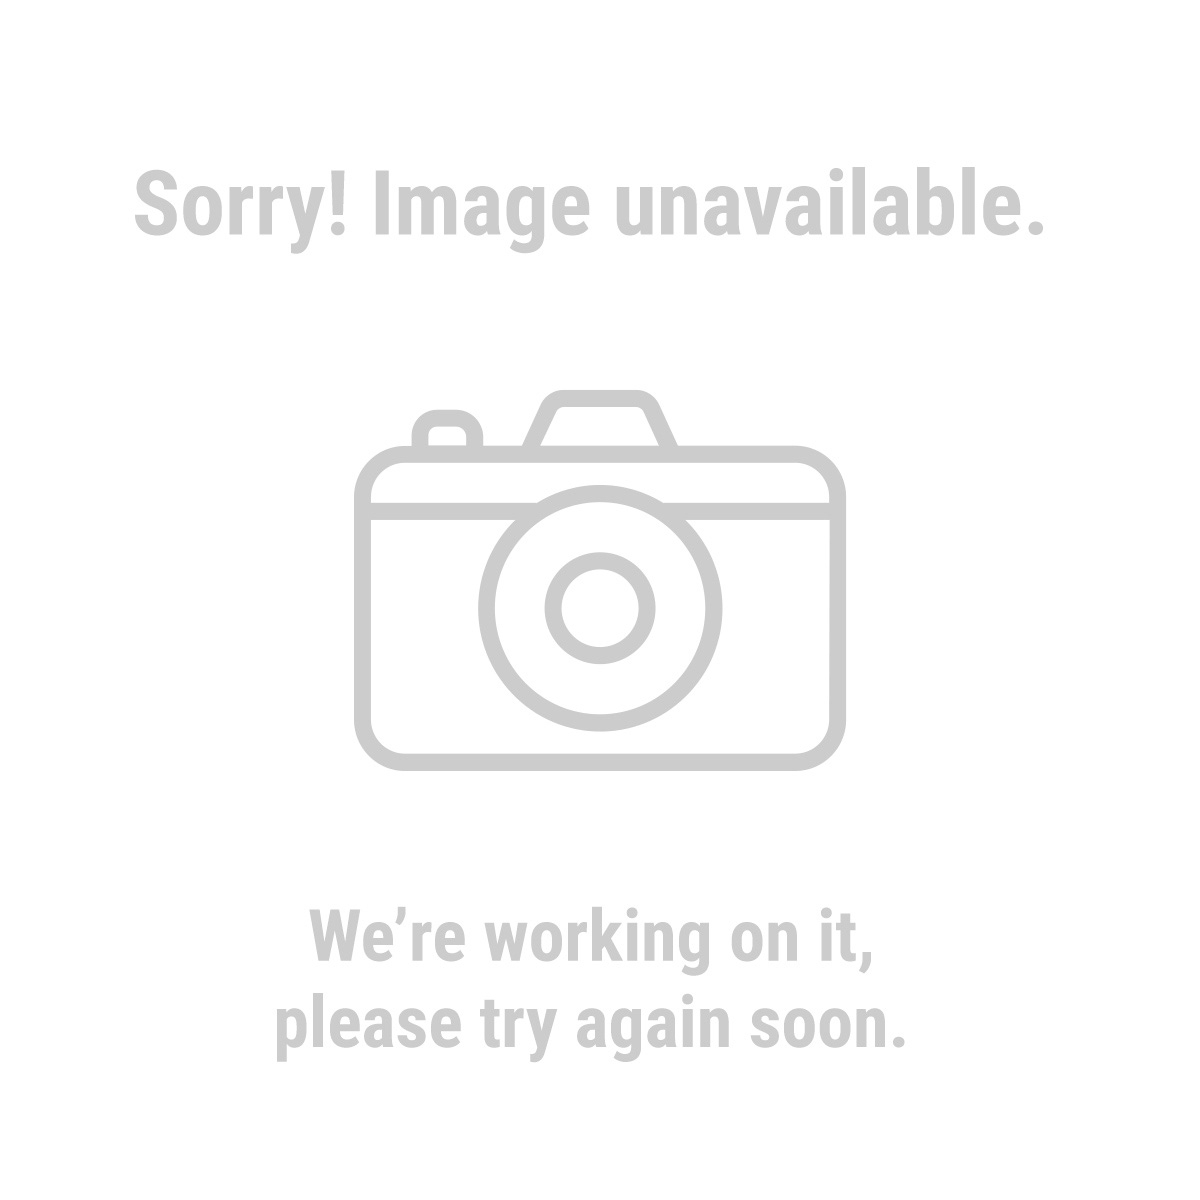 Bunker Hill Security 61806 Outdoor Imitation Security Camera